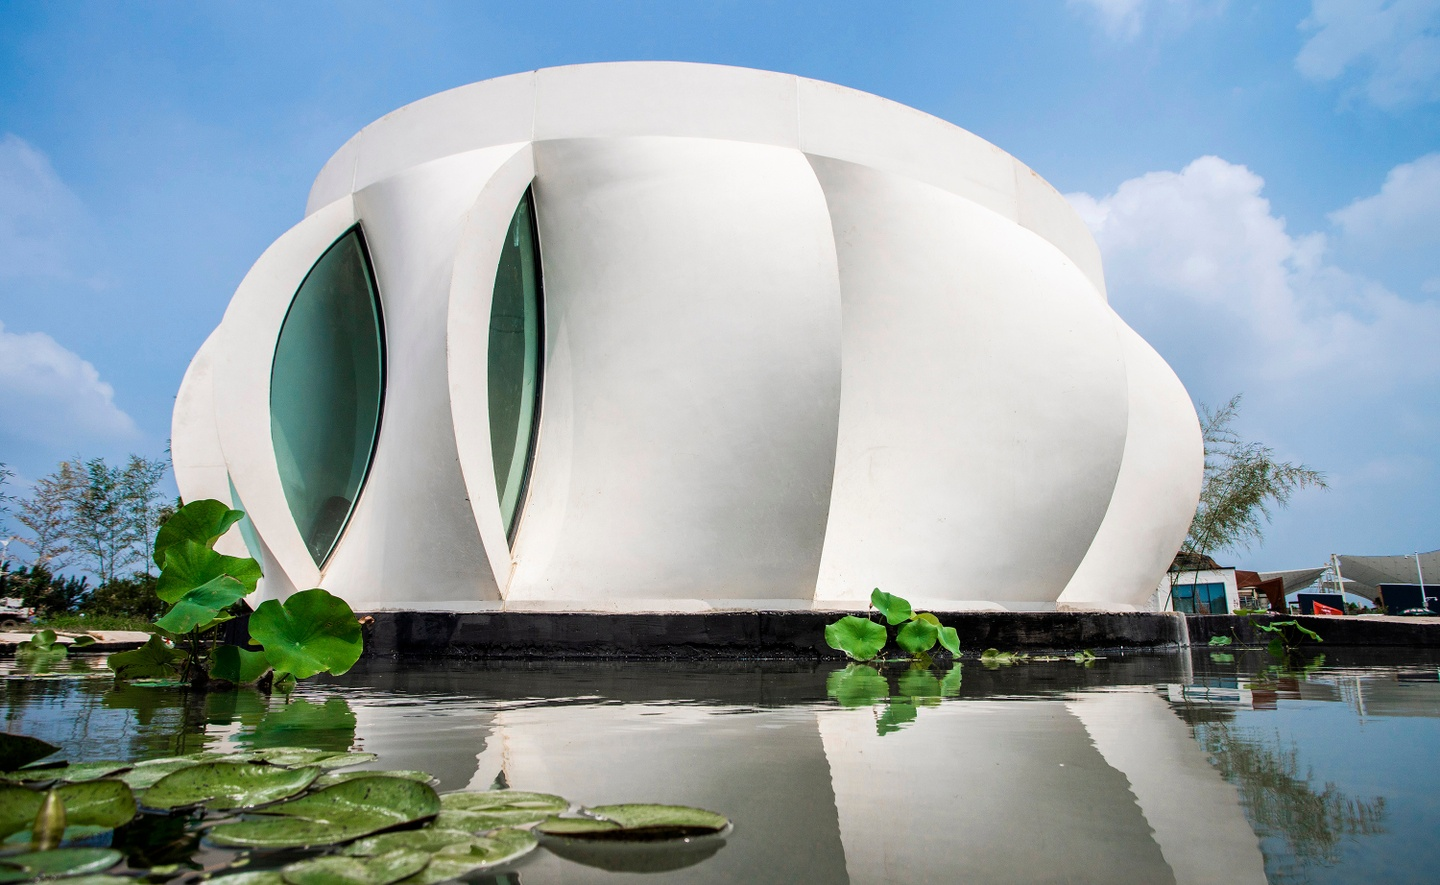 Photo of the exterior facade of a single-story home during the day. The exterior is composed of curved, overlapping panels, arrayed around a central axis like a blossoming flower. Water and lily pads are in the foreground, in front of the home.